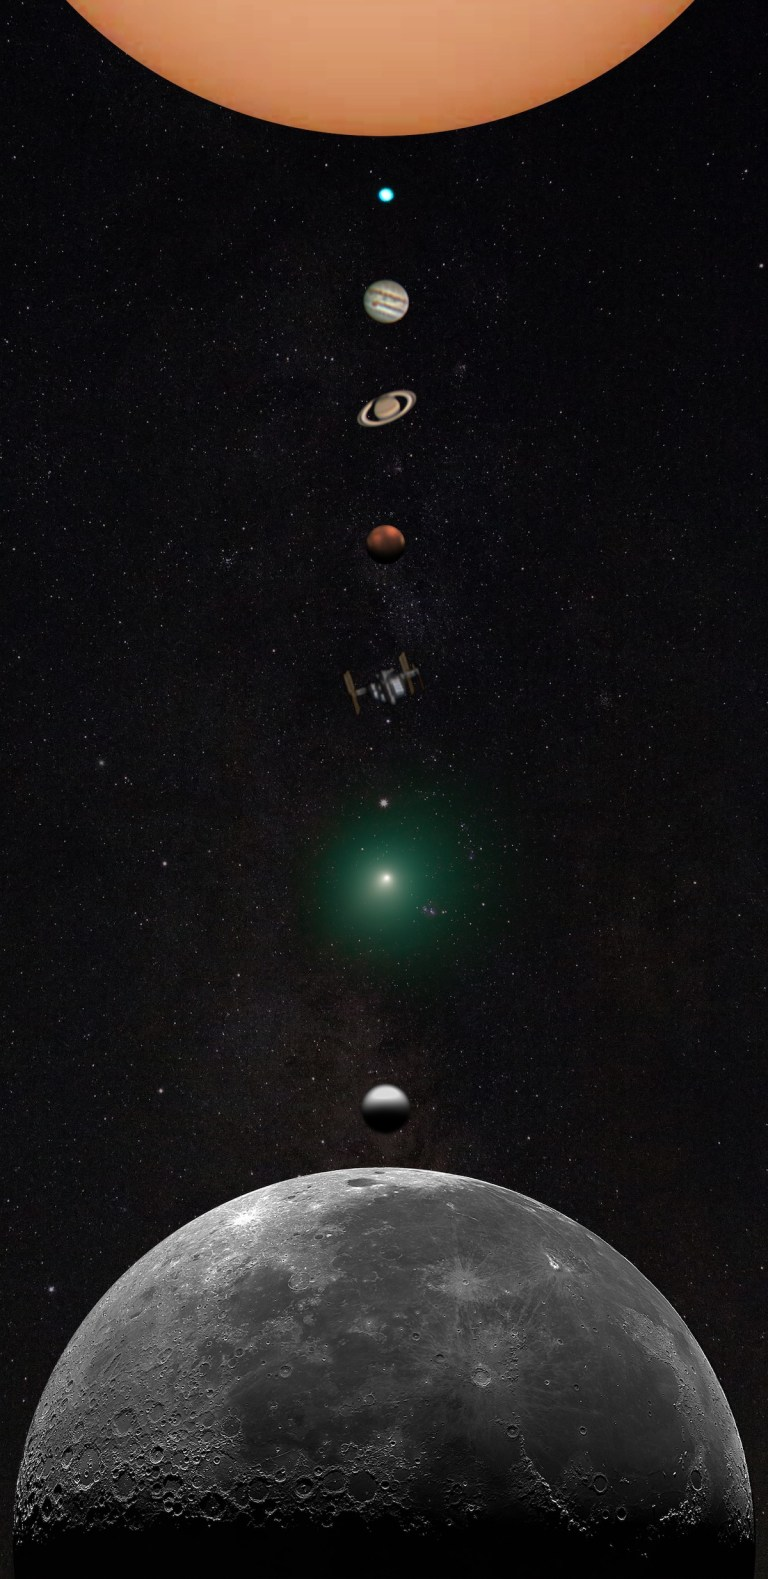 Andrew McCarthy Astrophotography - Solar System Composite